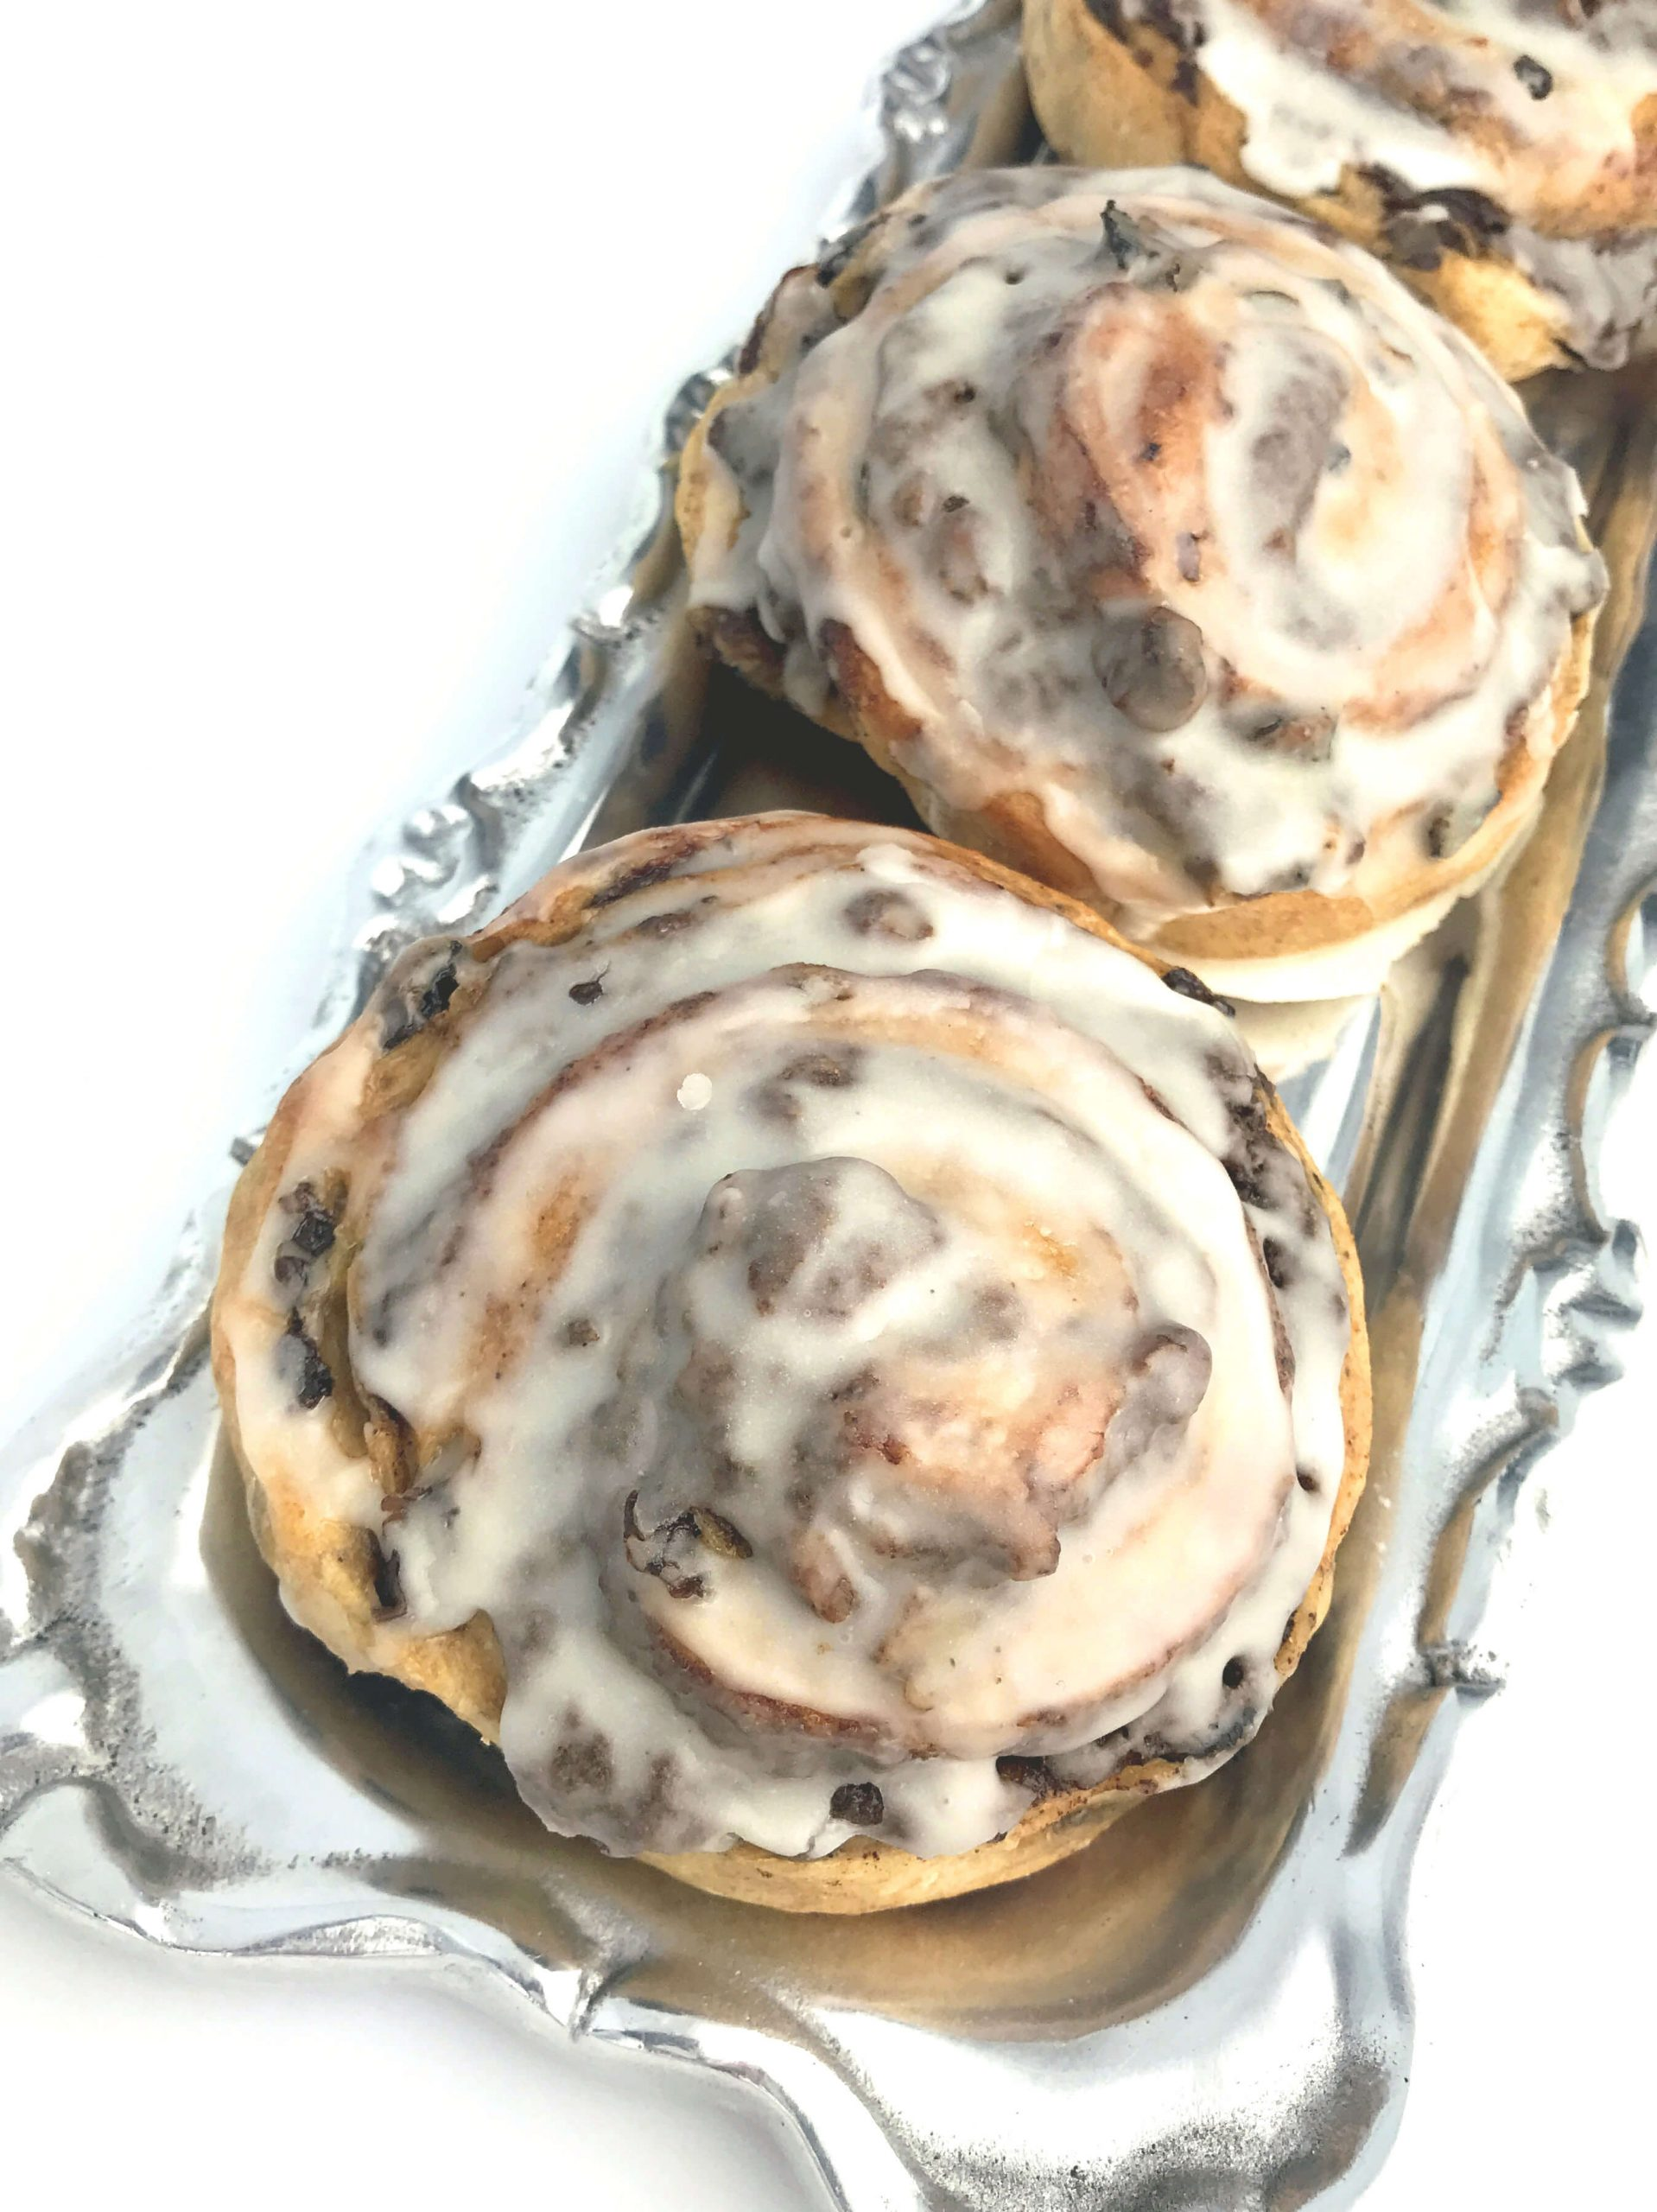 Lemon Glazed Cinnamon Raisin Buns